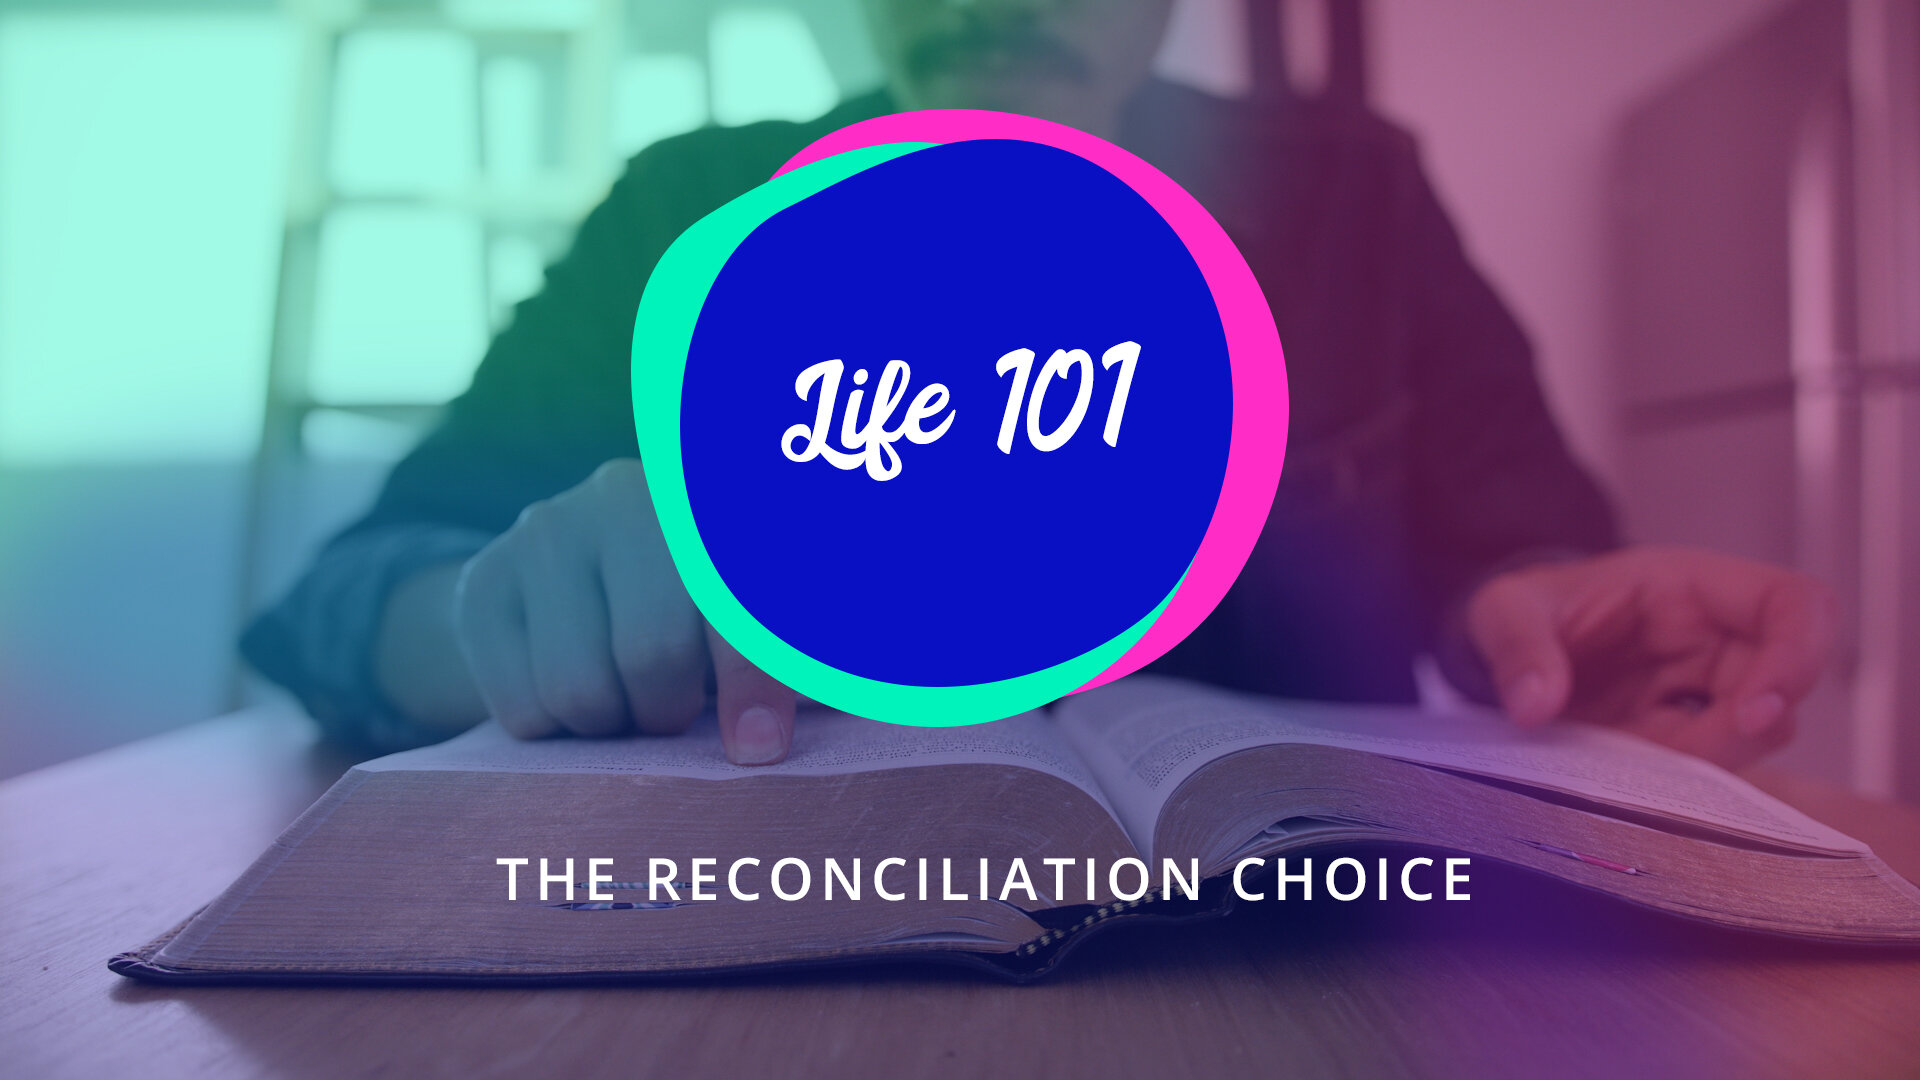 6 | The Reconciliation Choice